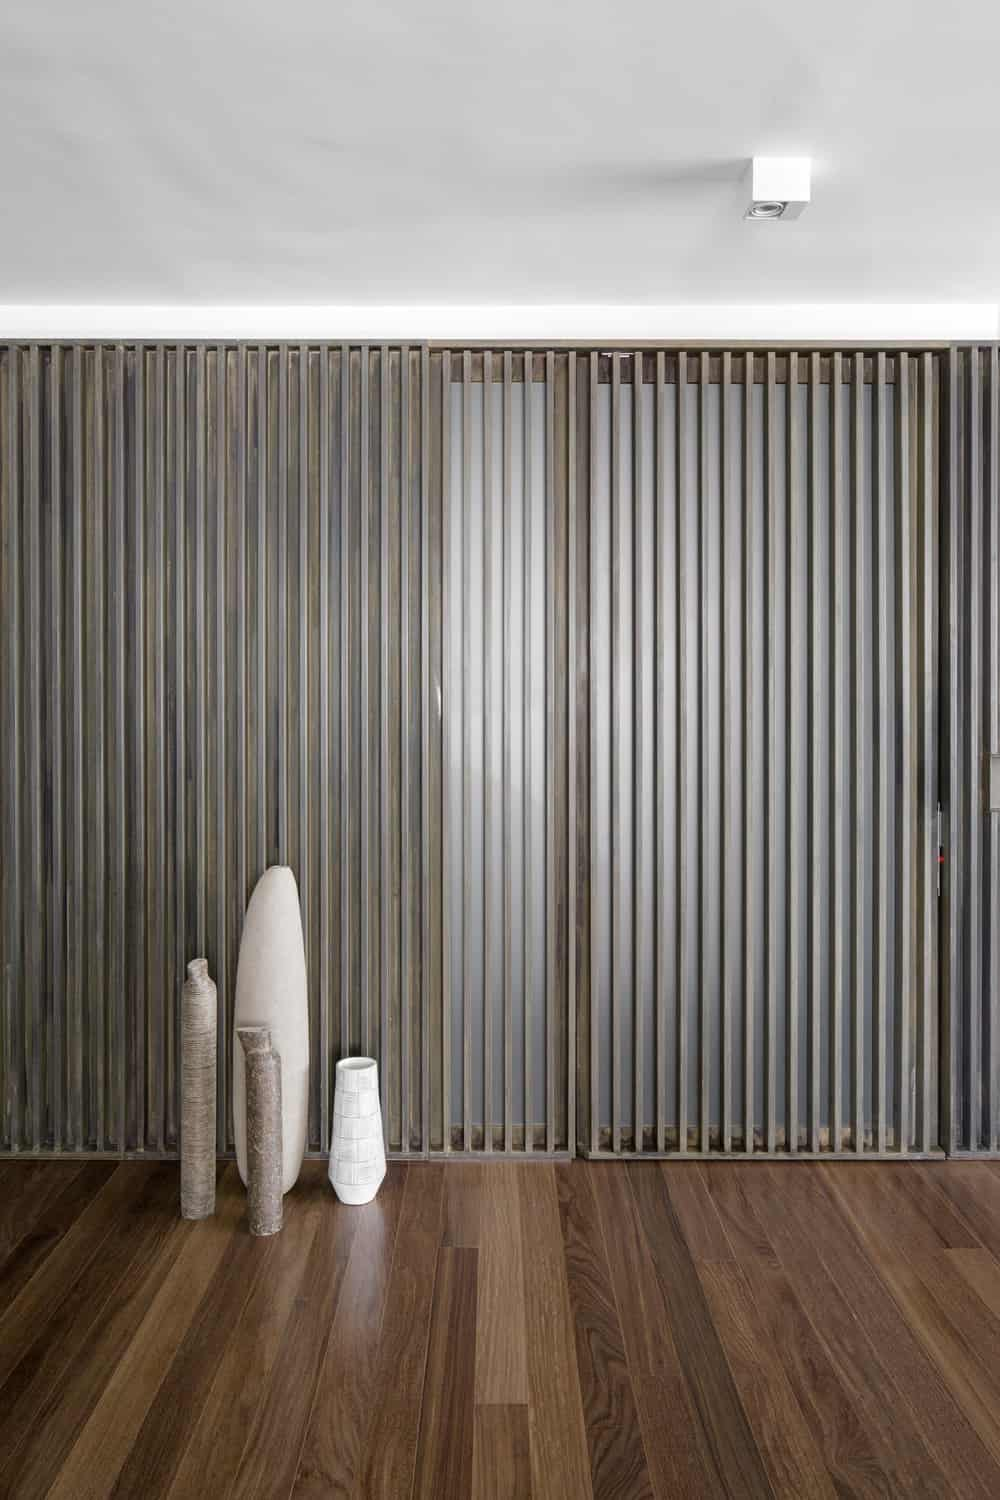 This is a close look at the slatted wall across from the sofa adorned with a few vases.